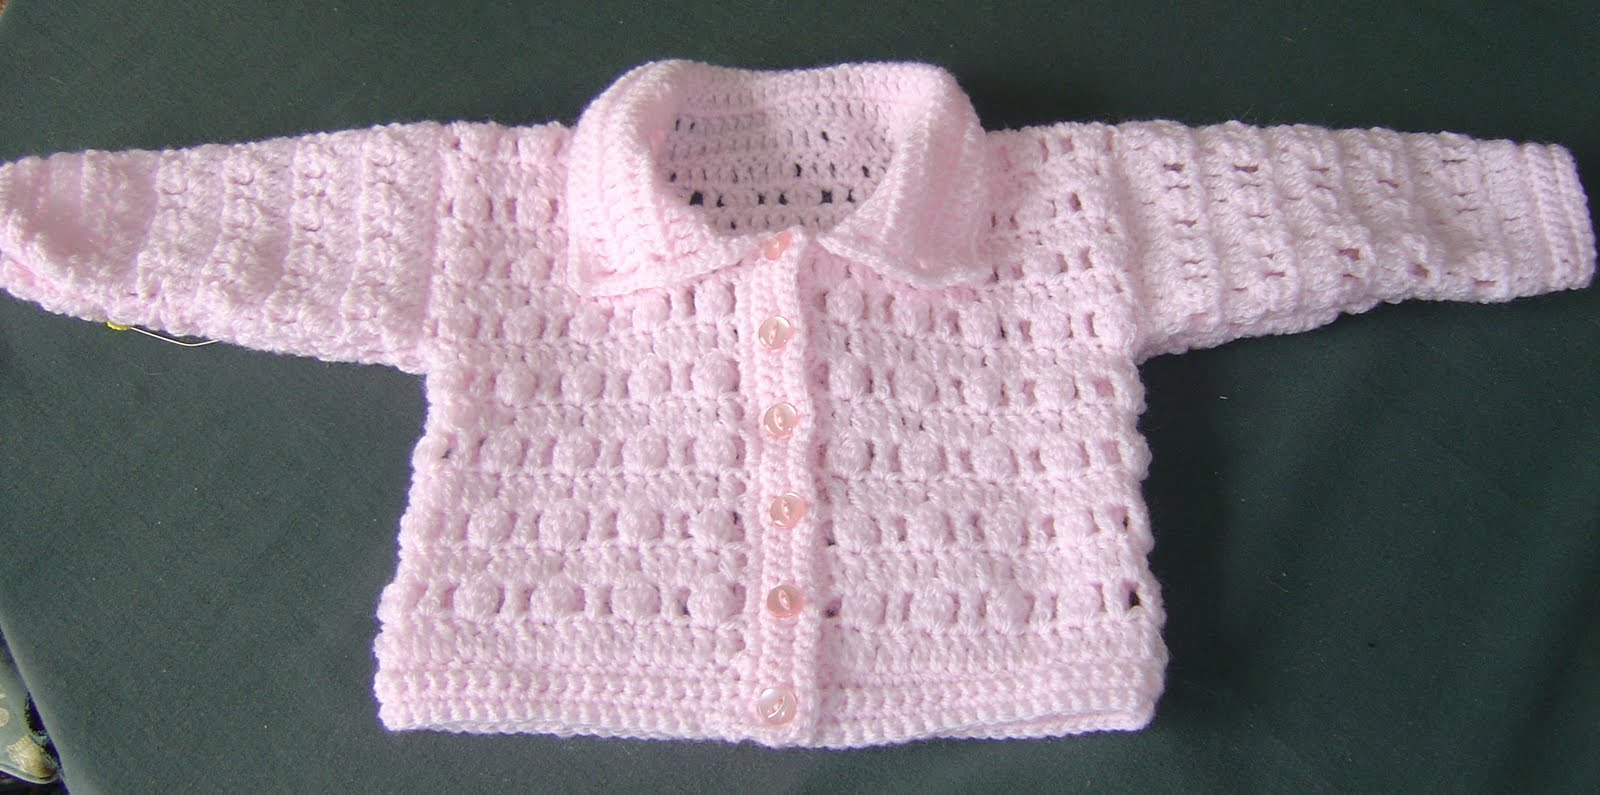 Crochet Baby Jacket Pattern : Free Crochet Jacket Pattern